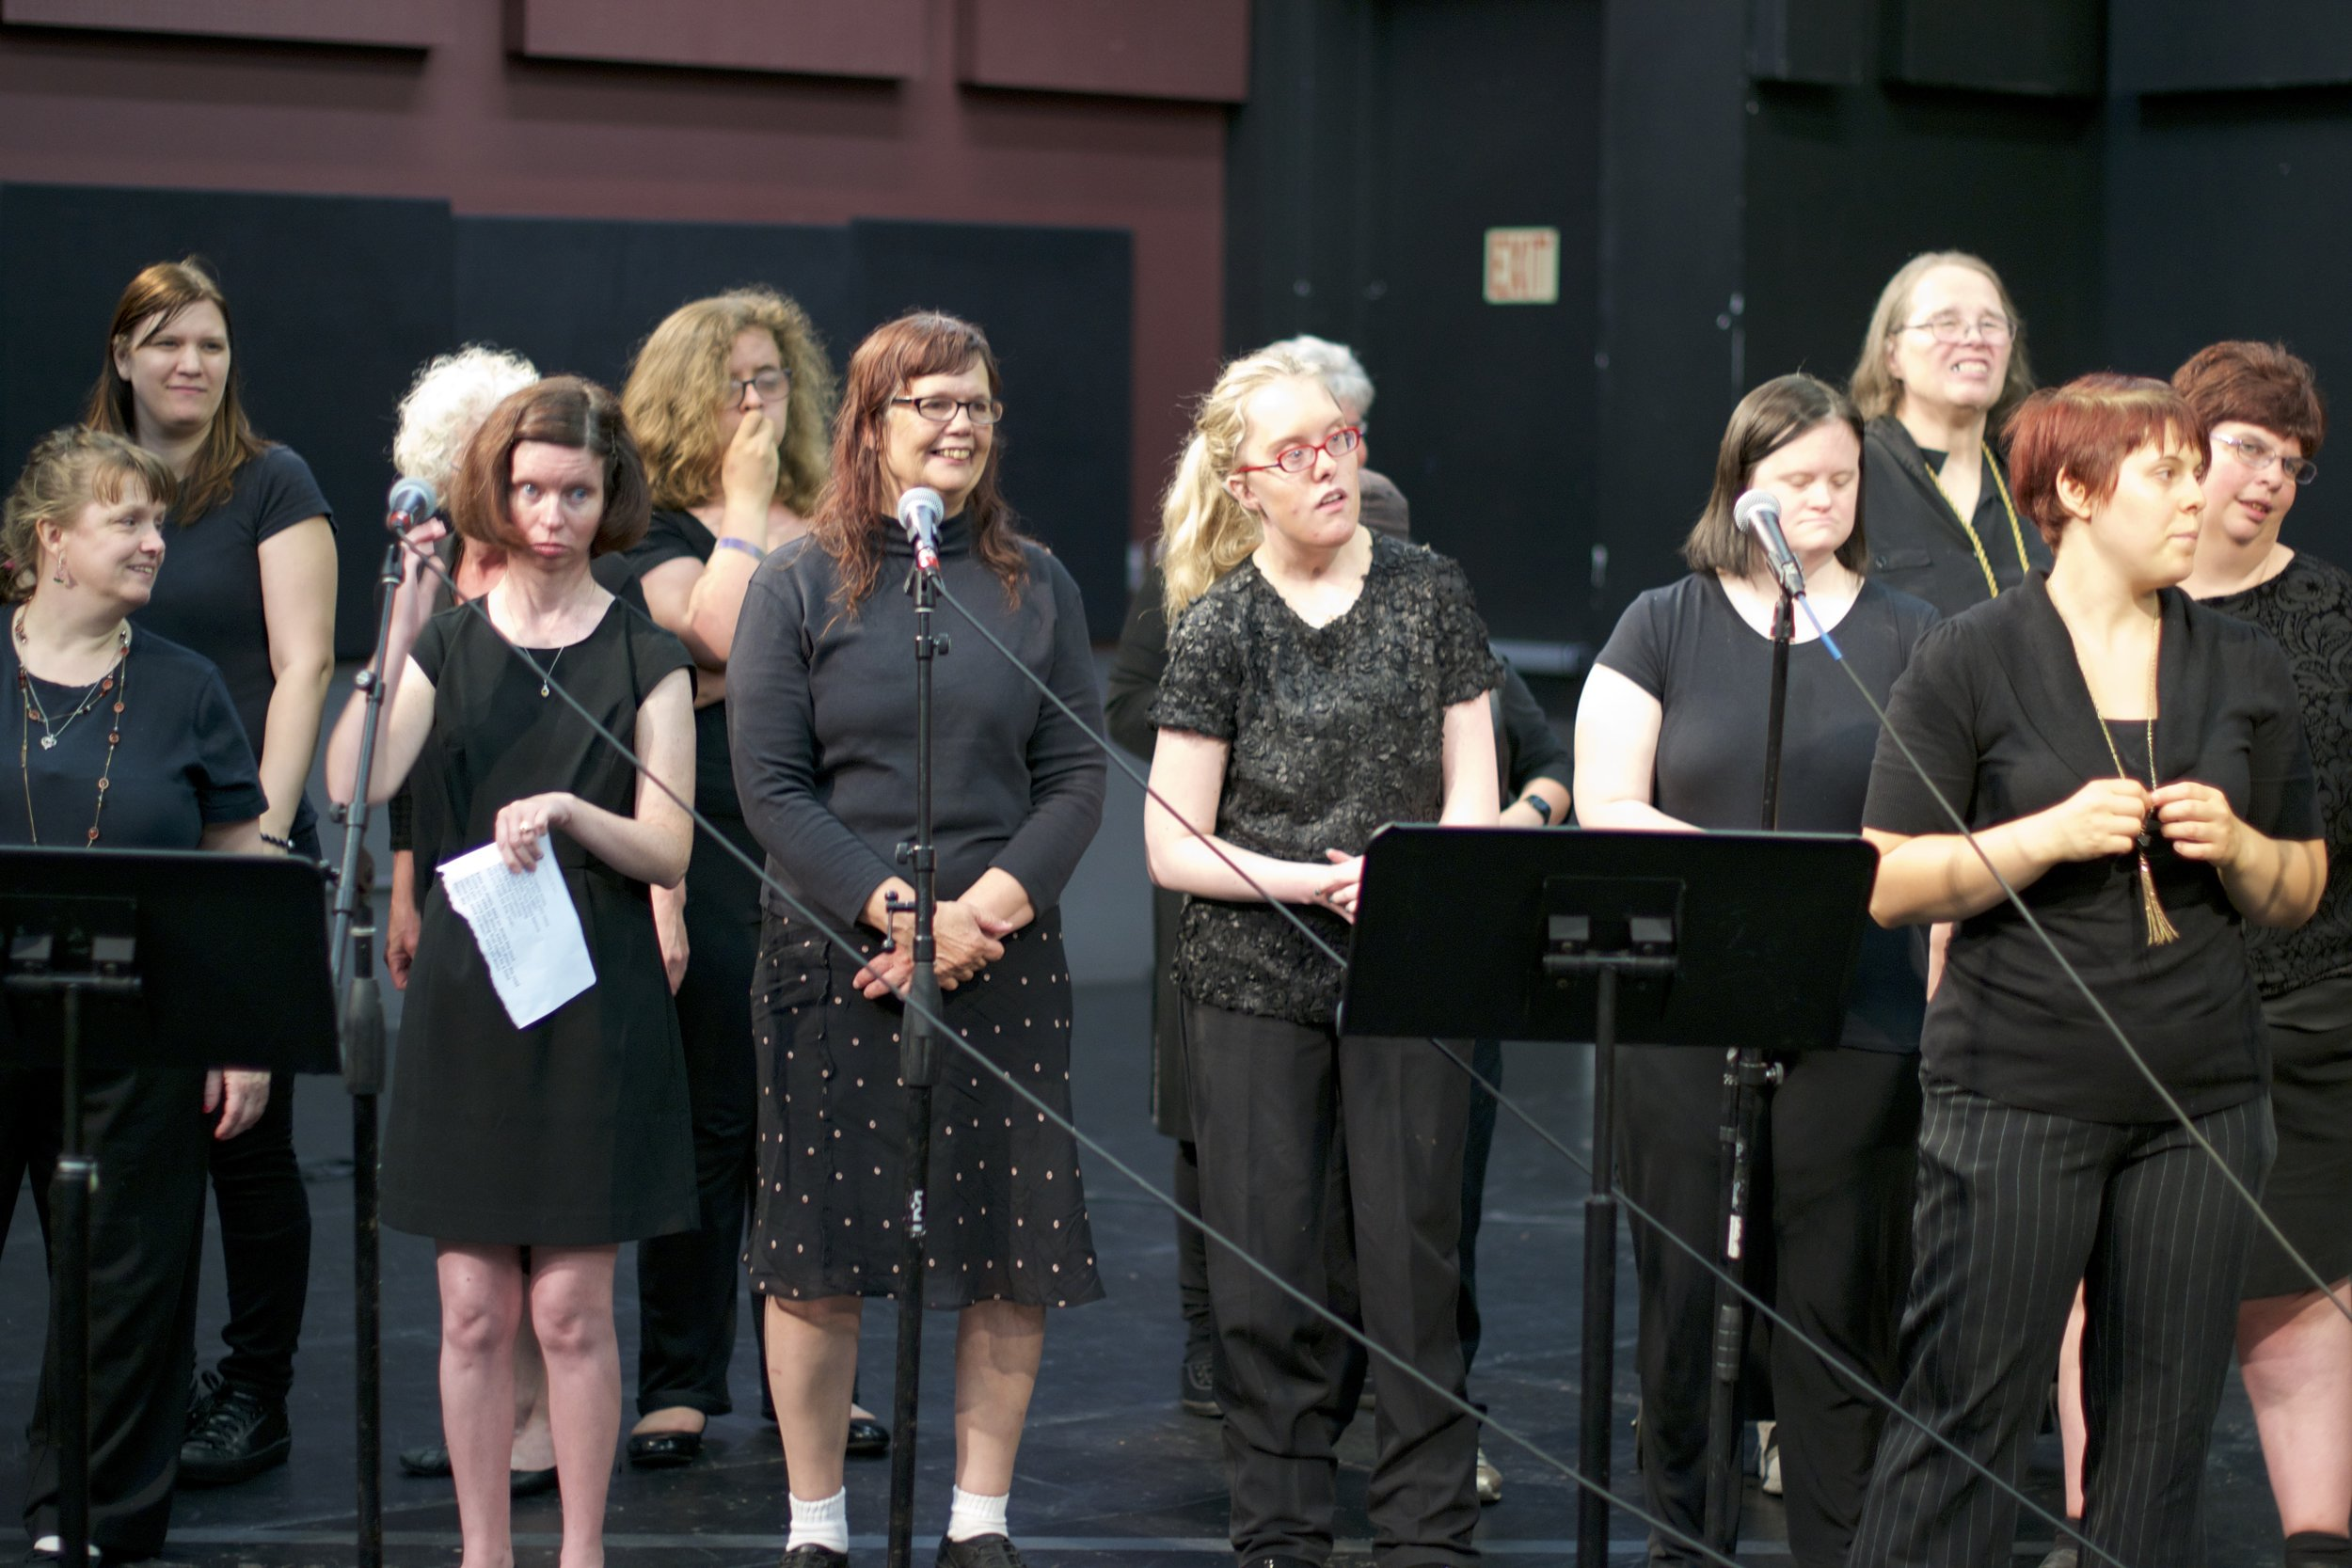 Group of women stand in front of microphones and a music stand